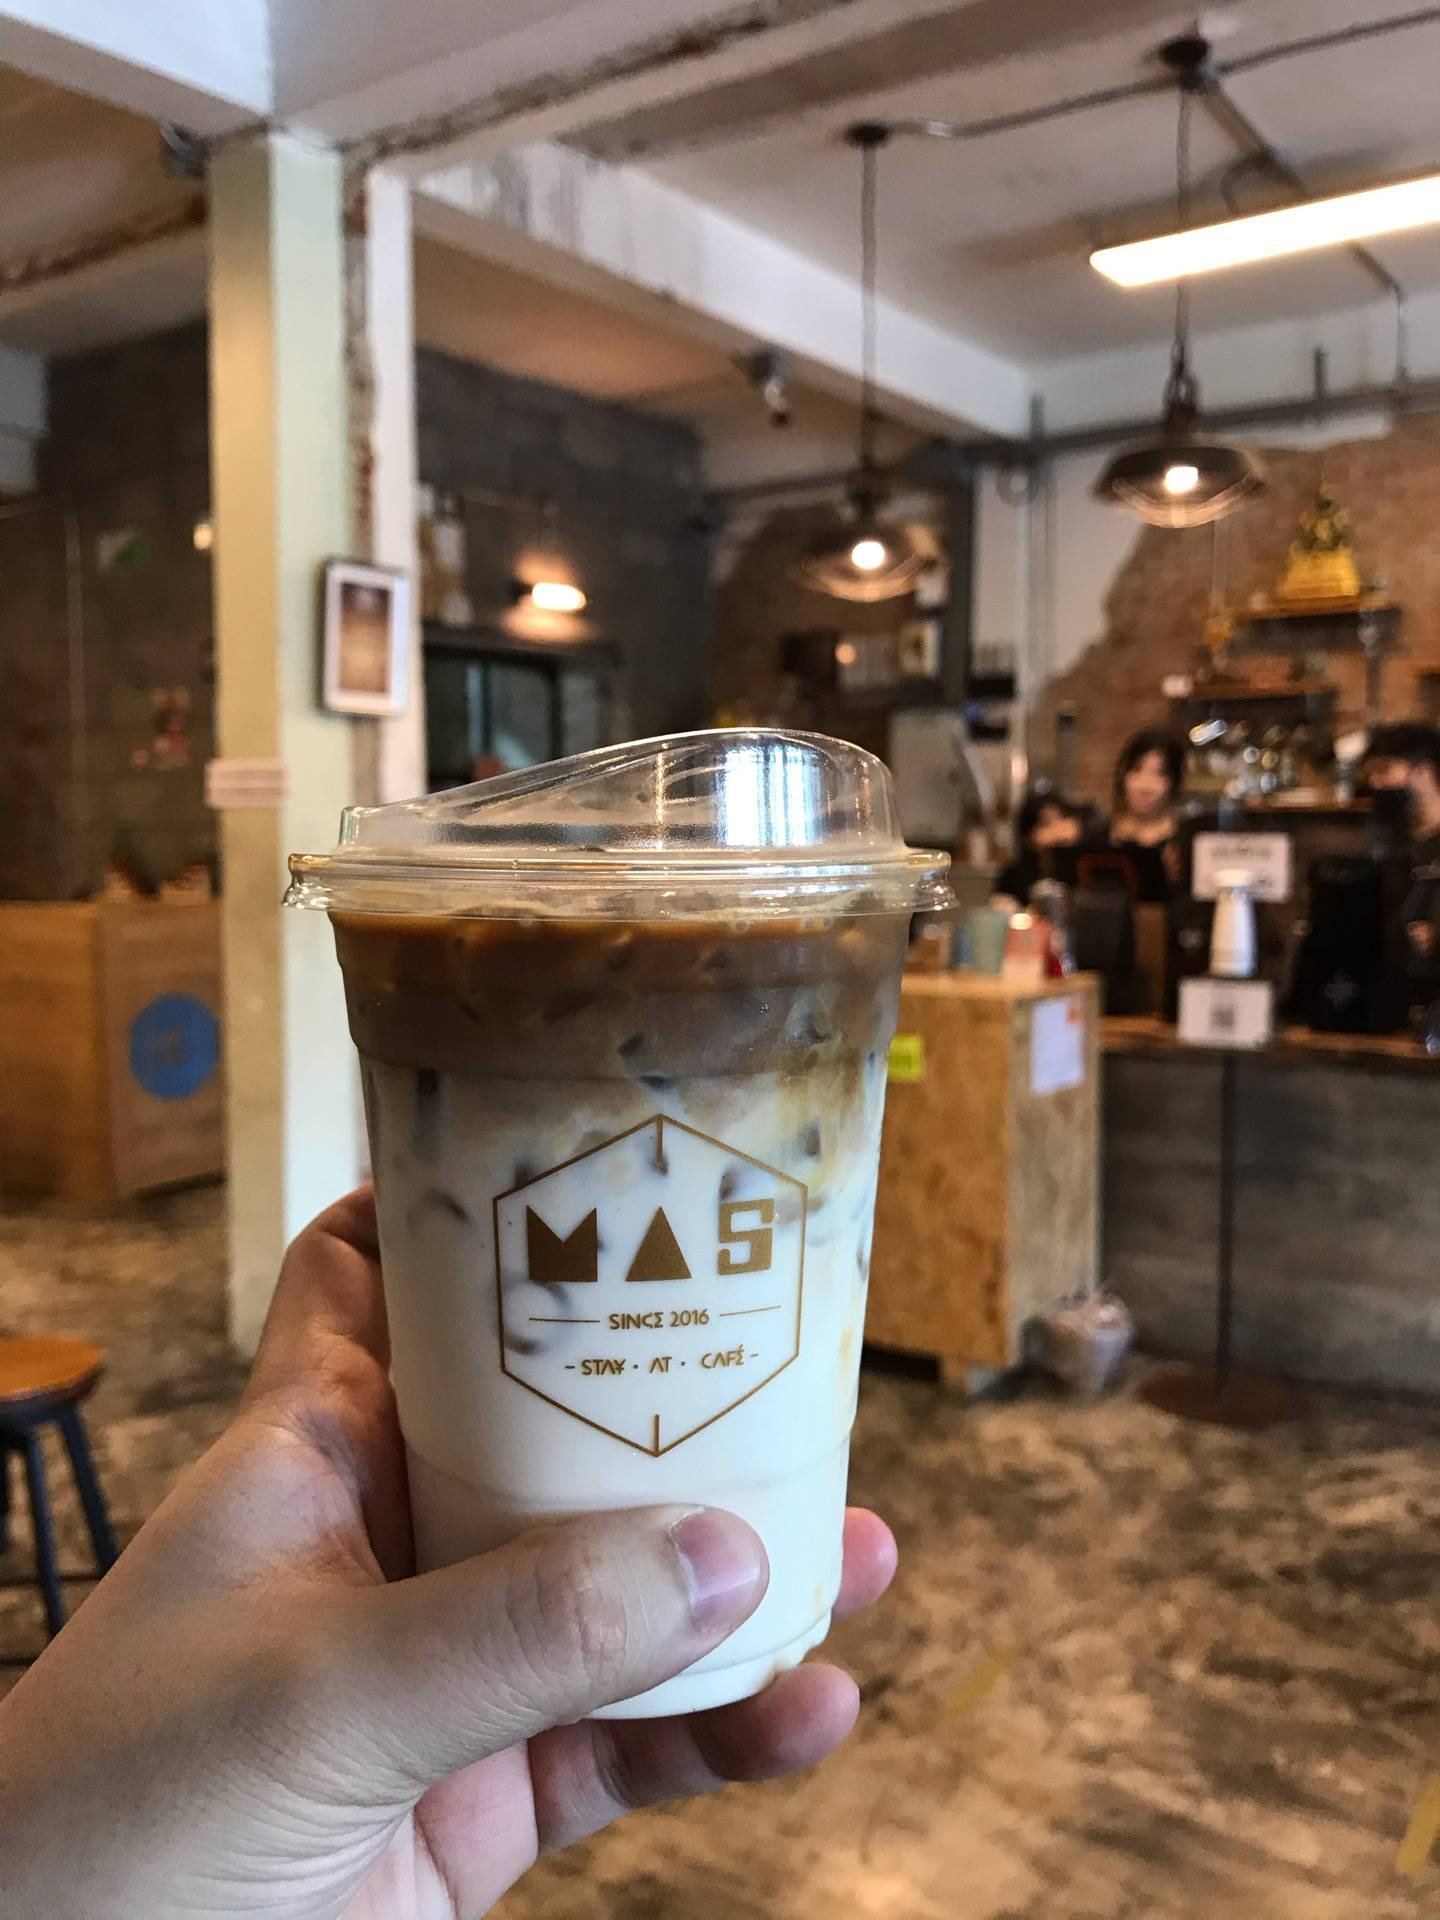 Mas Stay-at-cafe